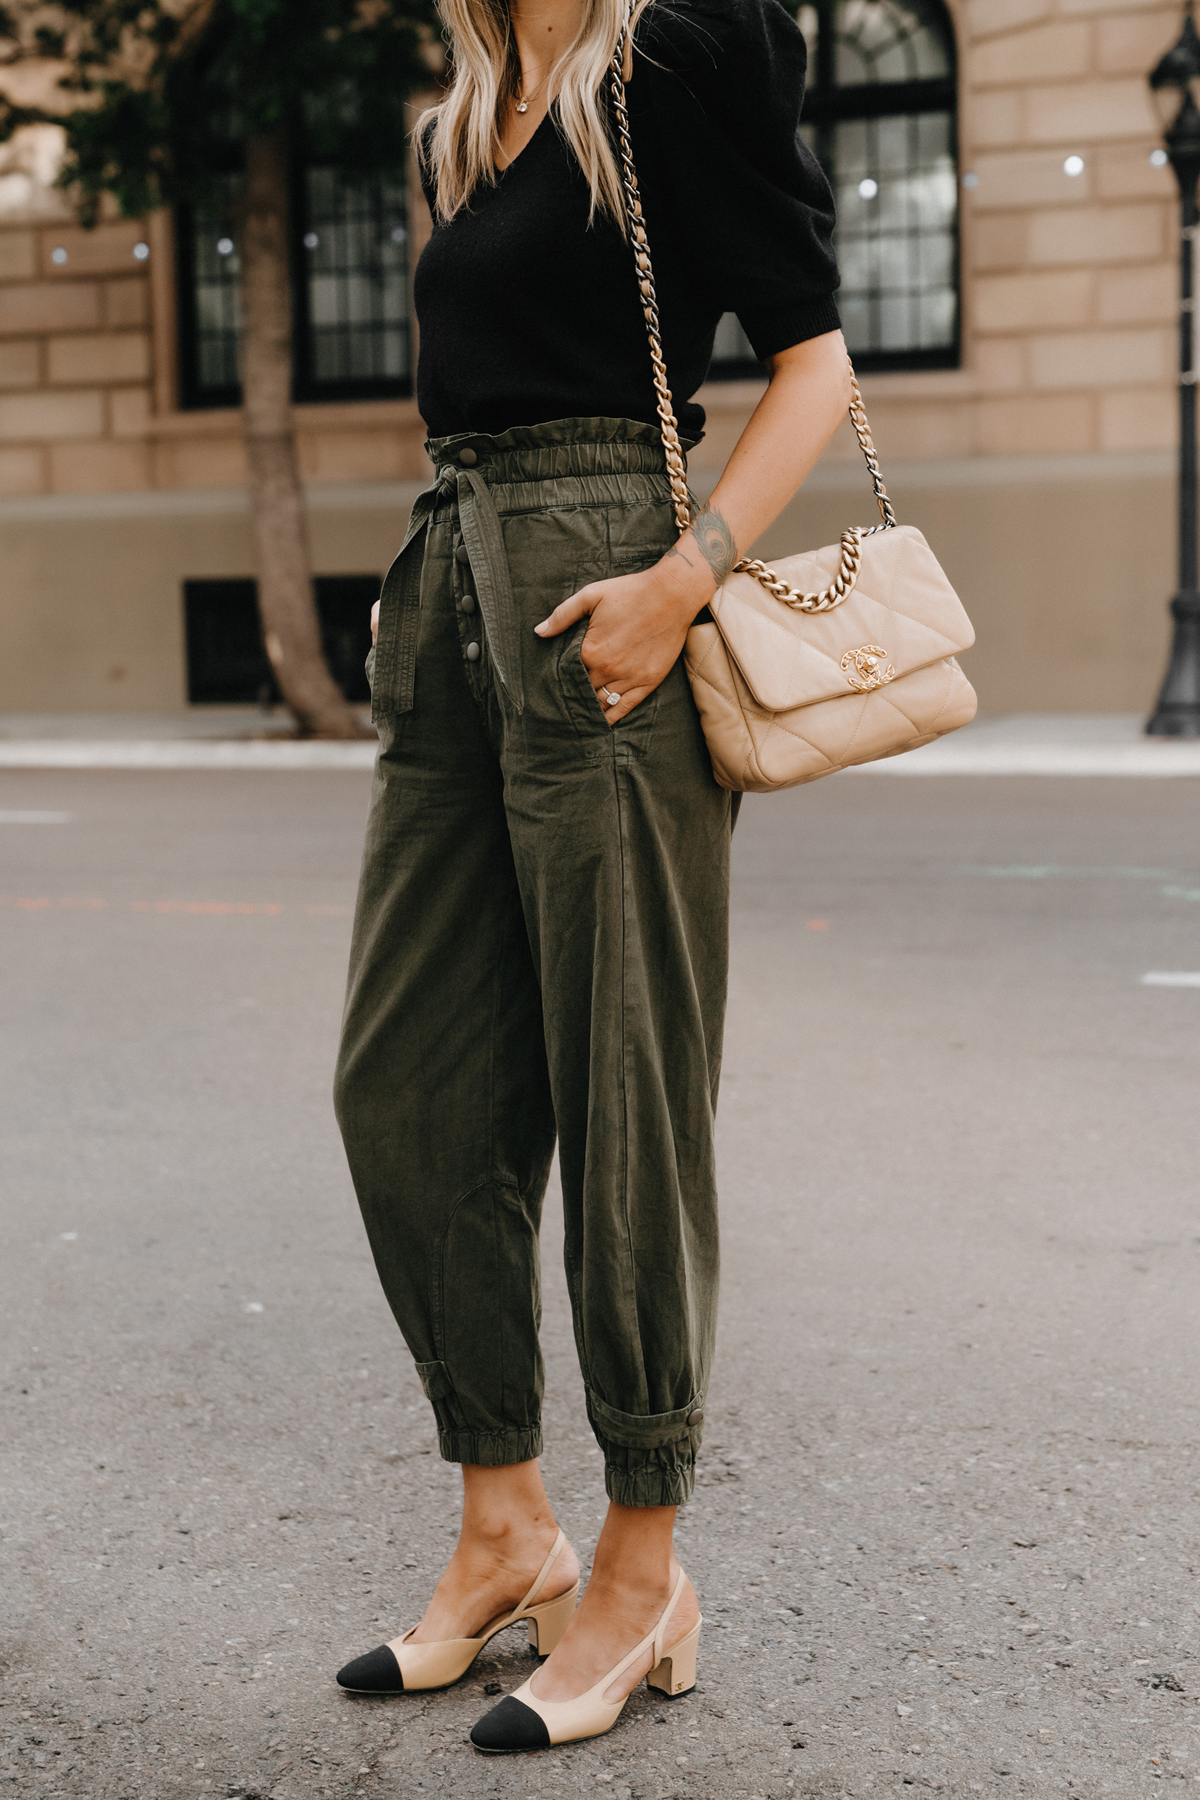 Fashion Jackson Wearing Black Puff Sleeve Sweater Olive Green Trousers Chanel Slingbacks non jeans work outfit for women